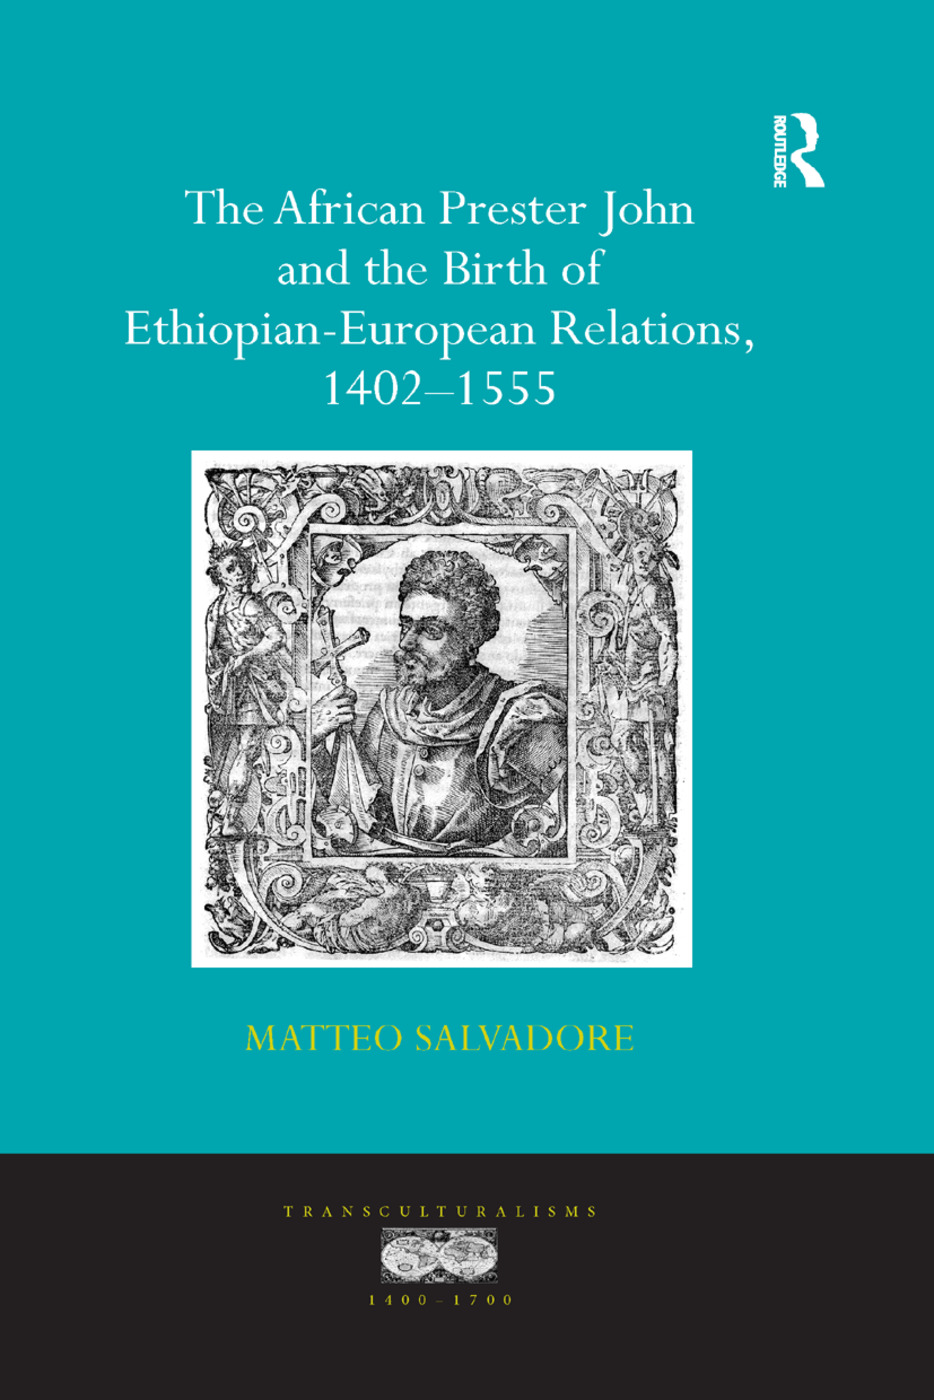 The African Prester John and the Birth of Ethiopian-European Relations, 1402-1555 book cover